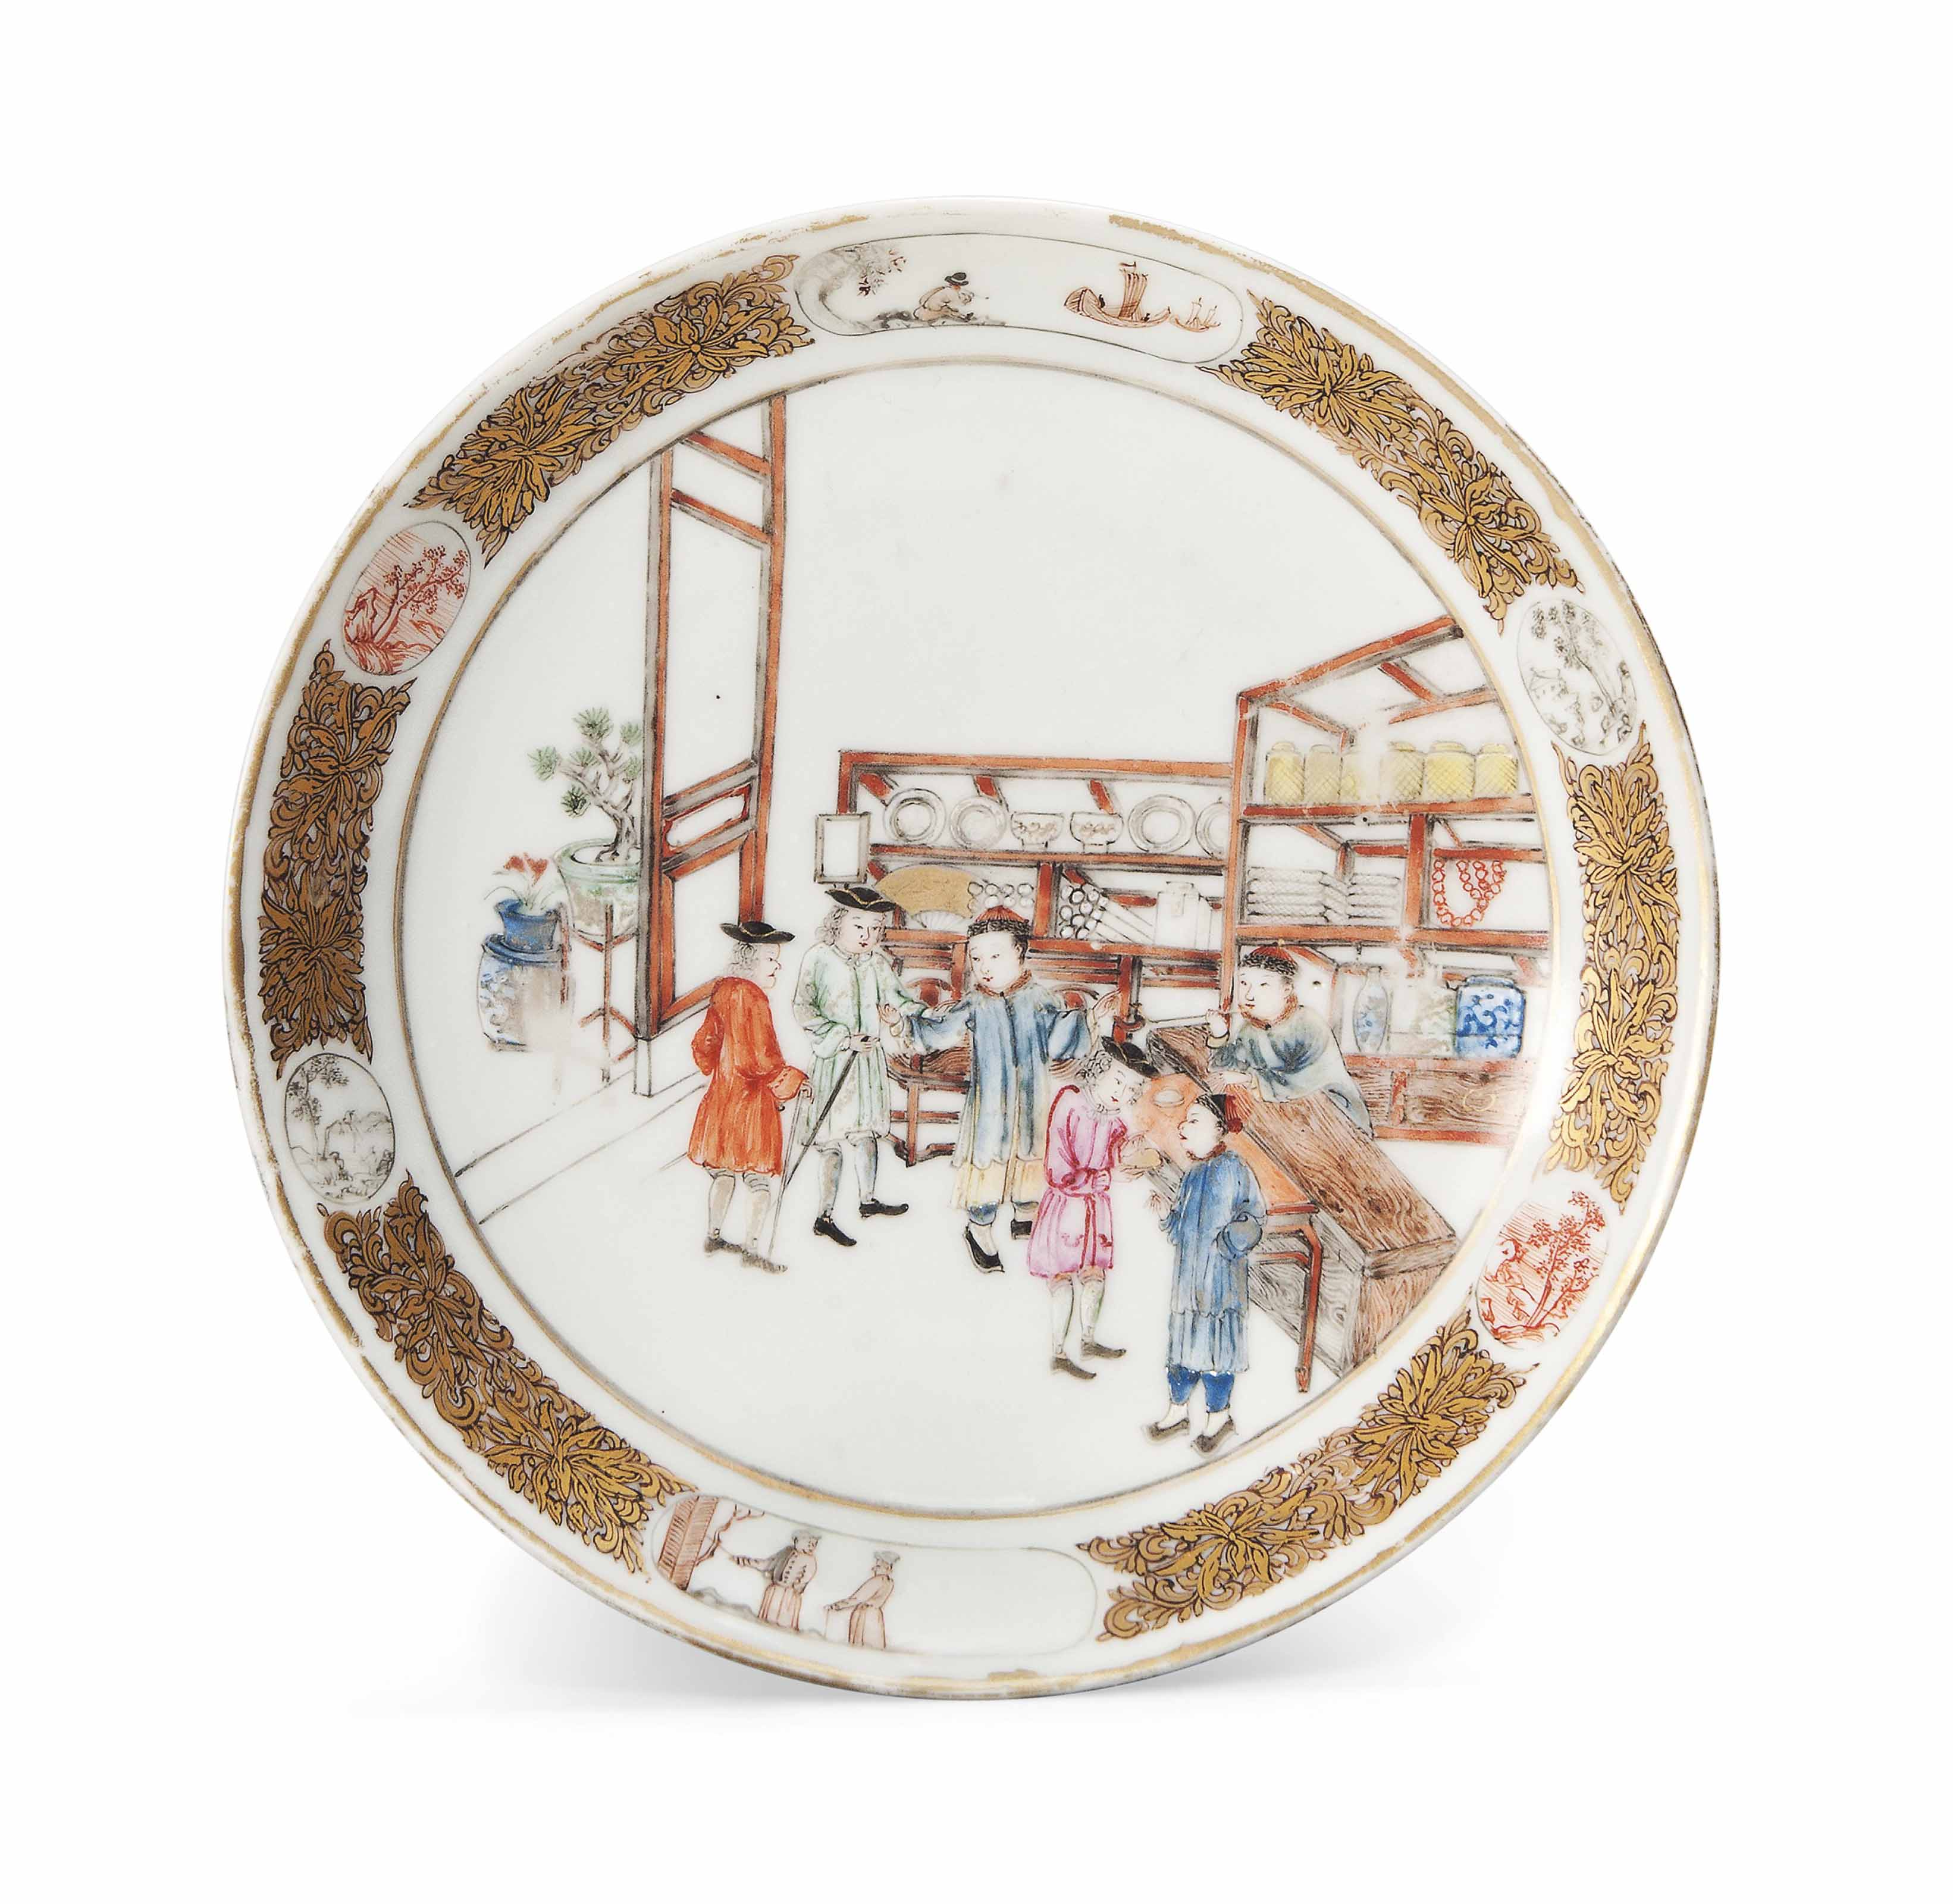 A CHINESE EXPORT FAMILLE ROSE AND GILT 'PORCELAIN TRADE' SAUCER